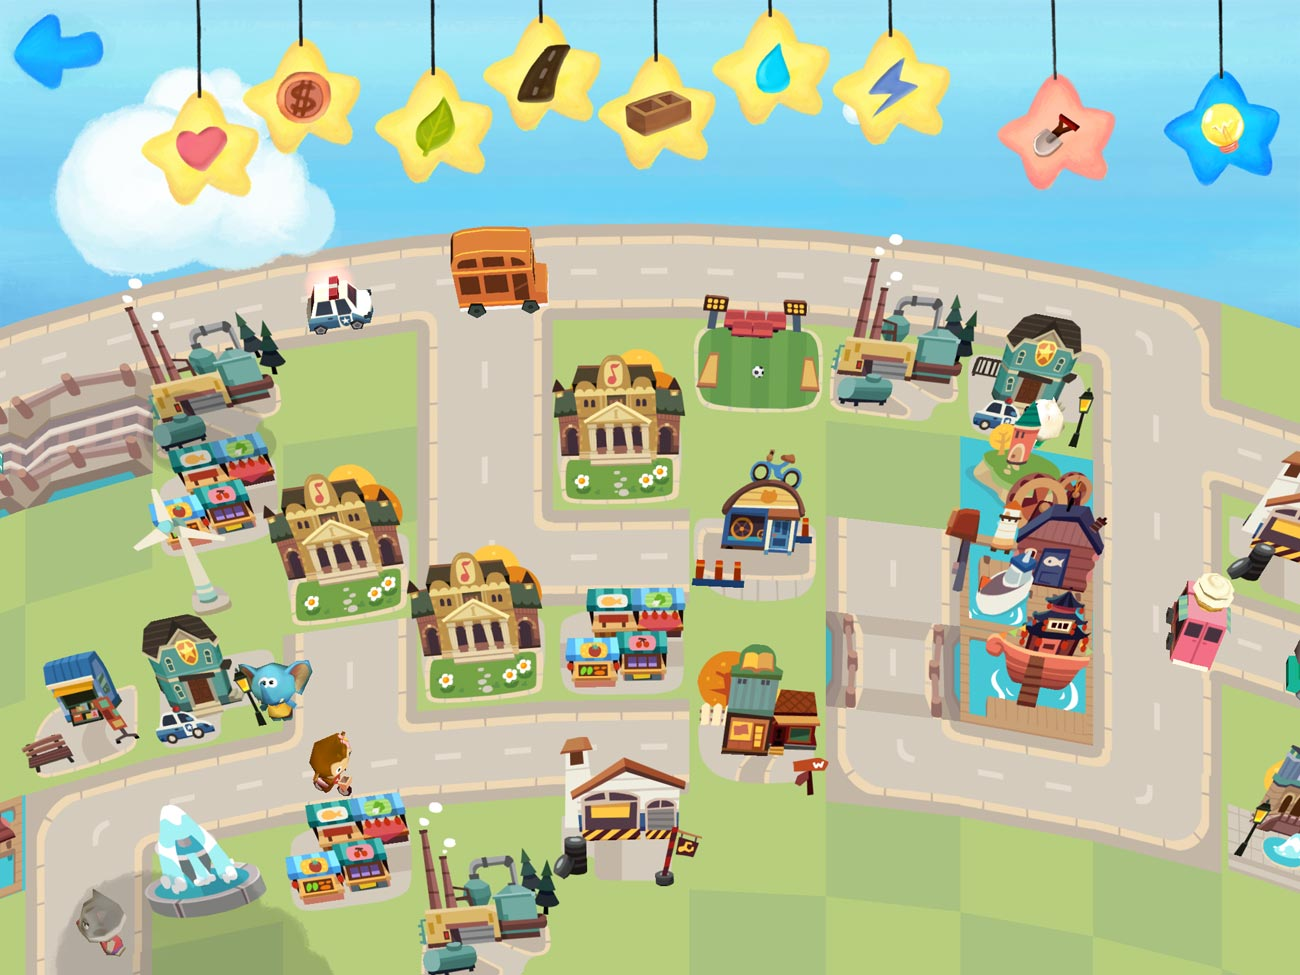 Hoopa City is a simple city-building sandbox game that younger kids will enjoy.